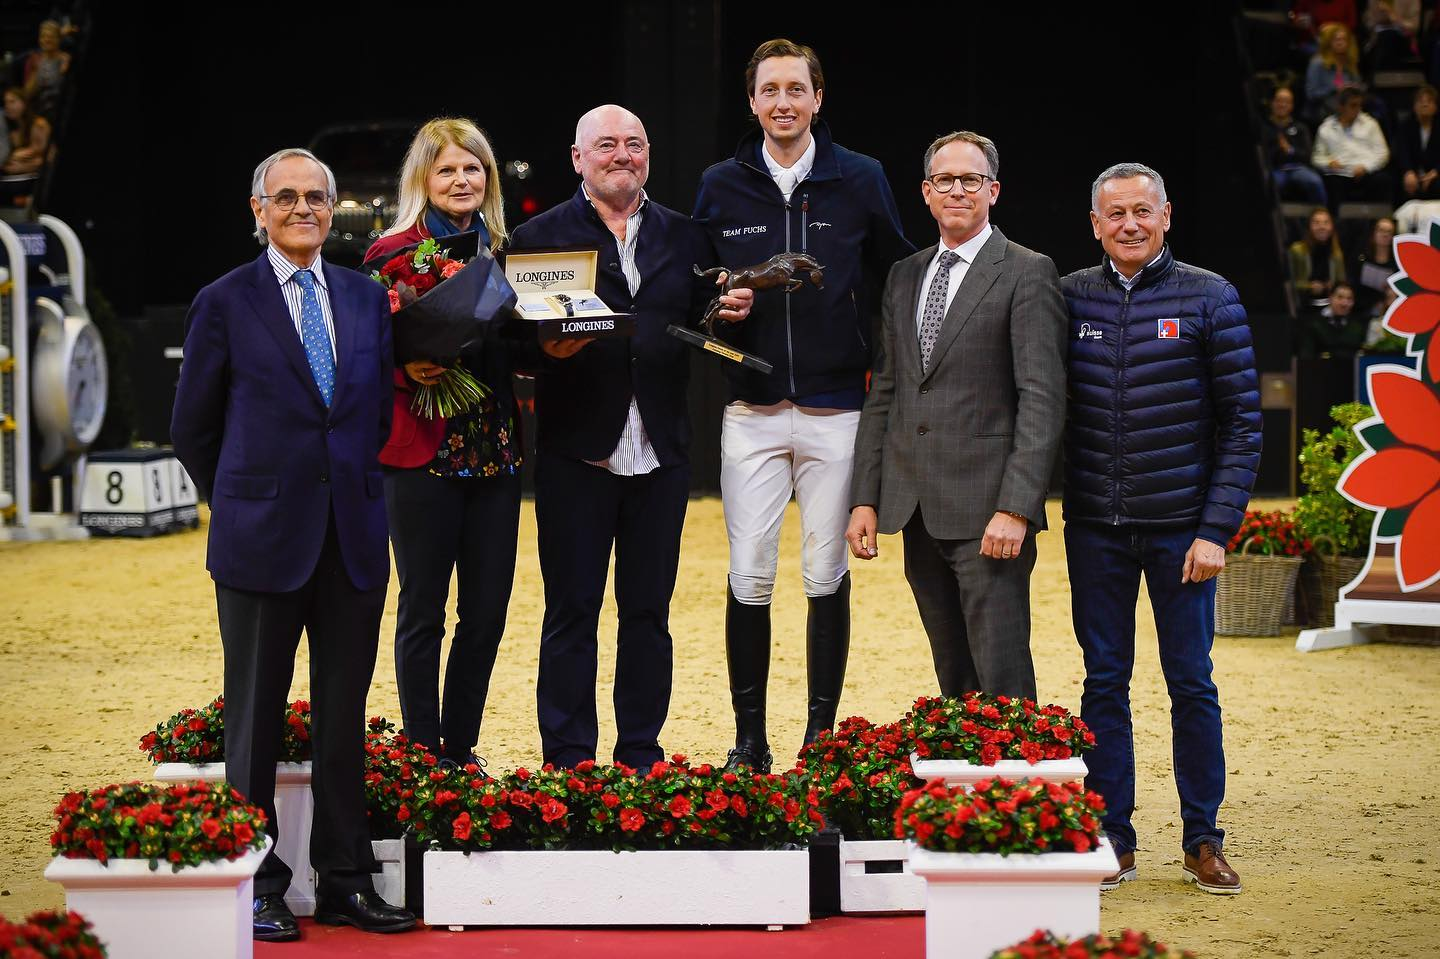 Luigi Baleri announced as 2019 Longines Owner of the Year